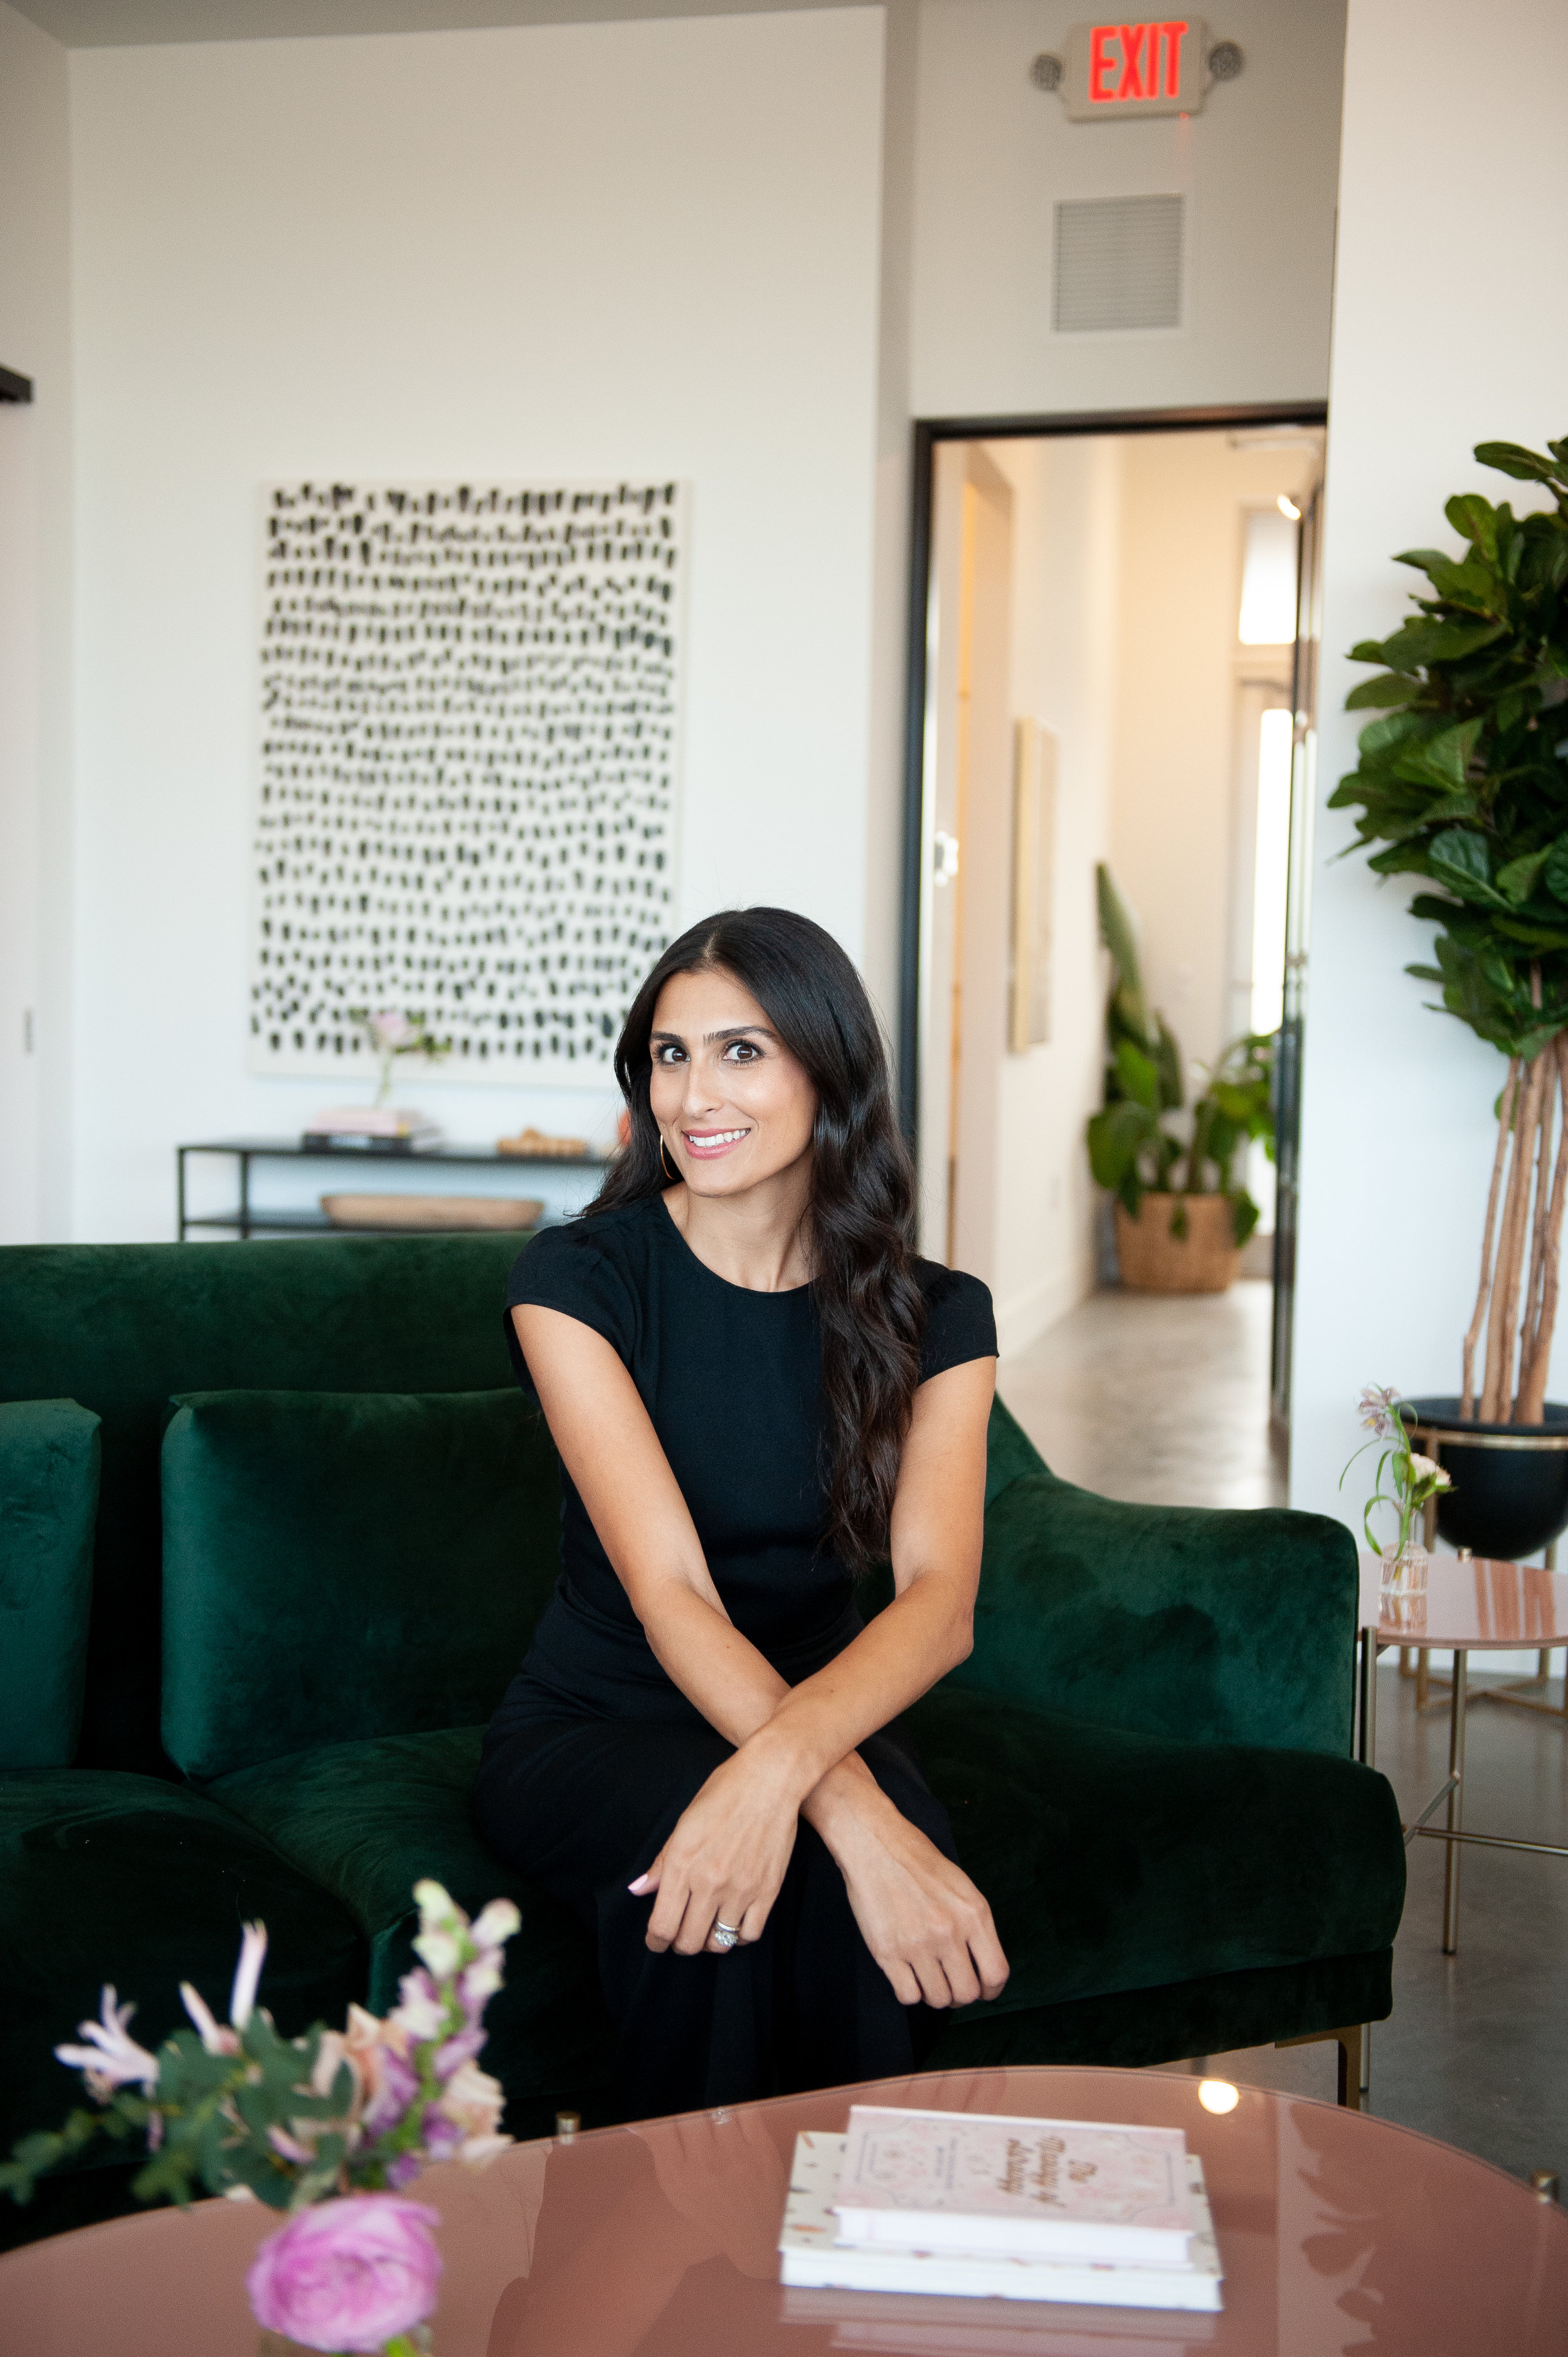 Emery Aileen Lavin Founder South Florida Co-Working Space